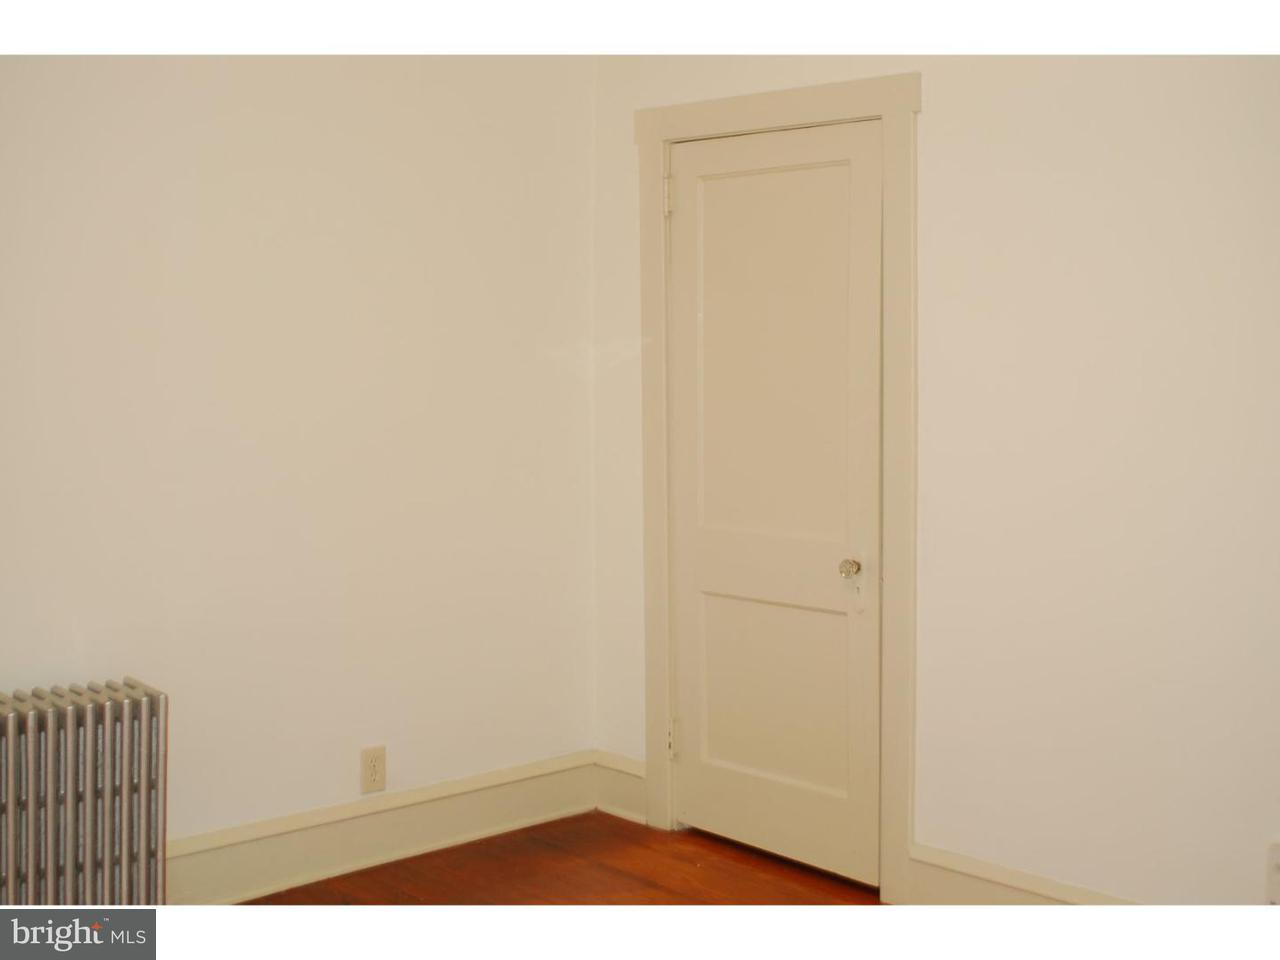 Additional photo for property listing at 141 W BROADWAY  Salem, Nueva Jersey 08079 Estados Unidos